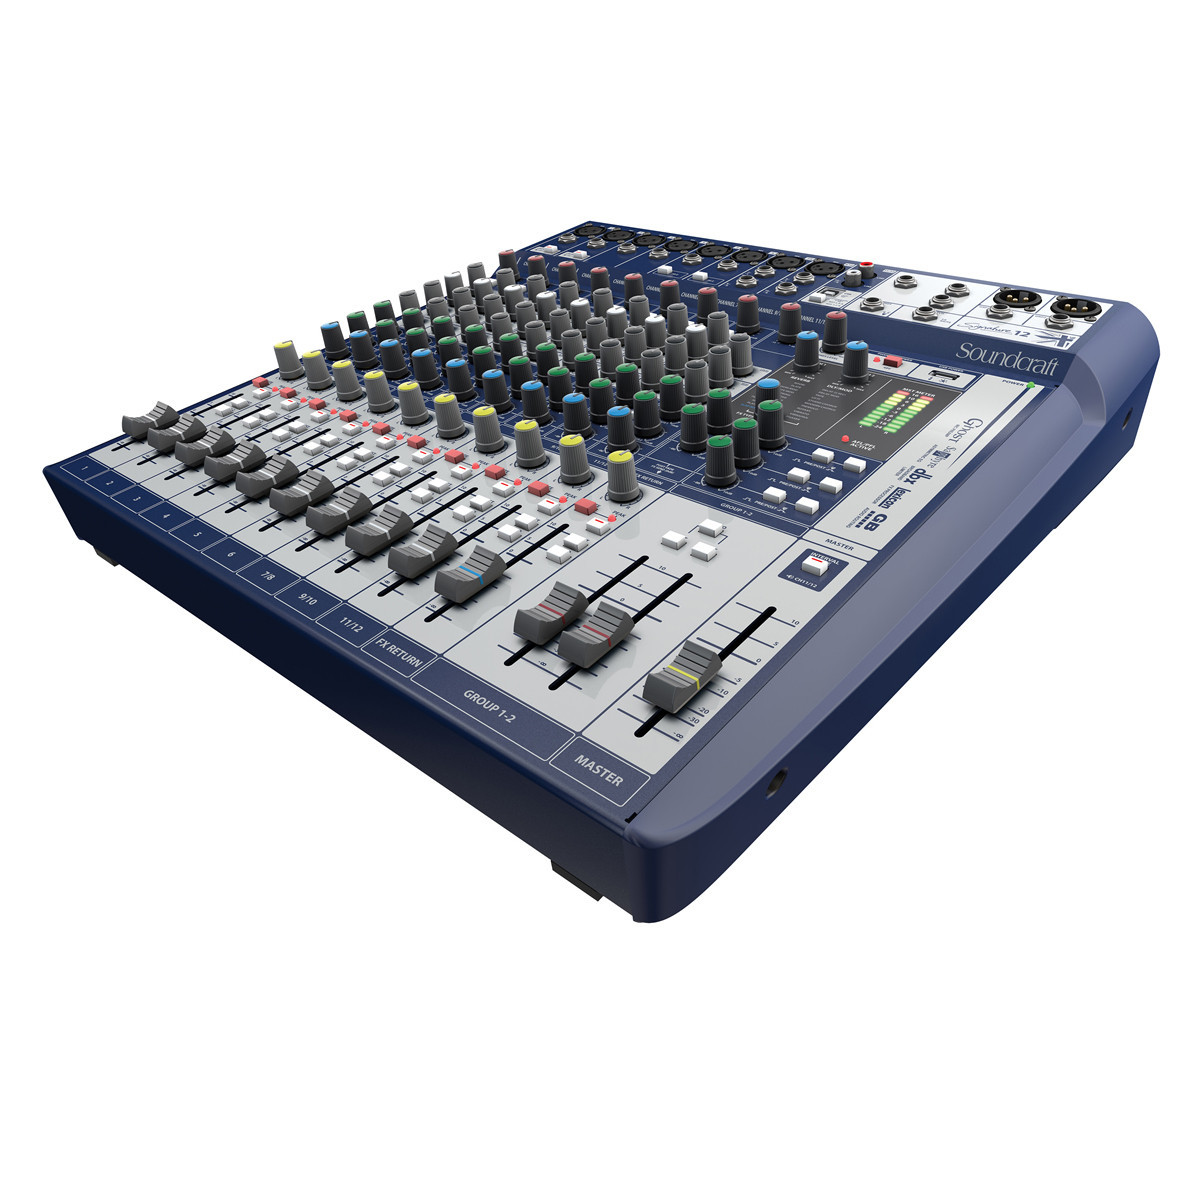 Soundcraft Signature 12 Analogue Mixer with USB and FX